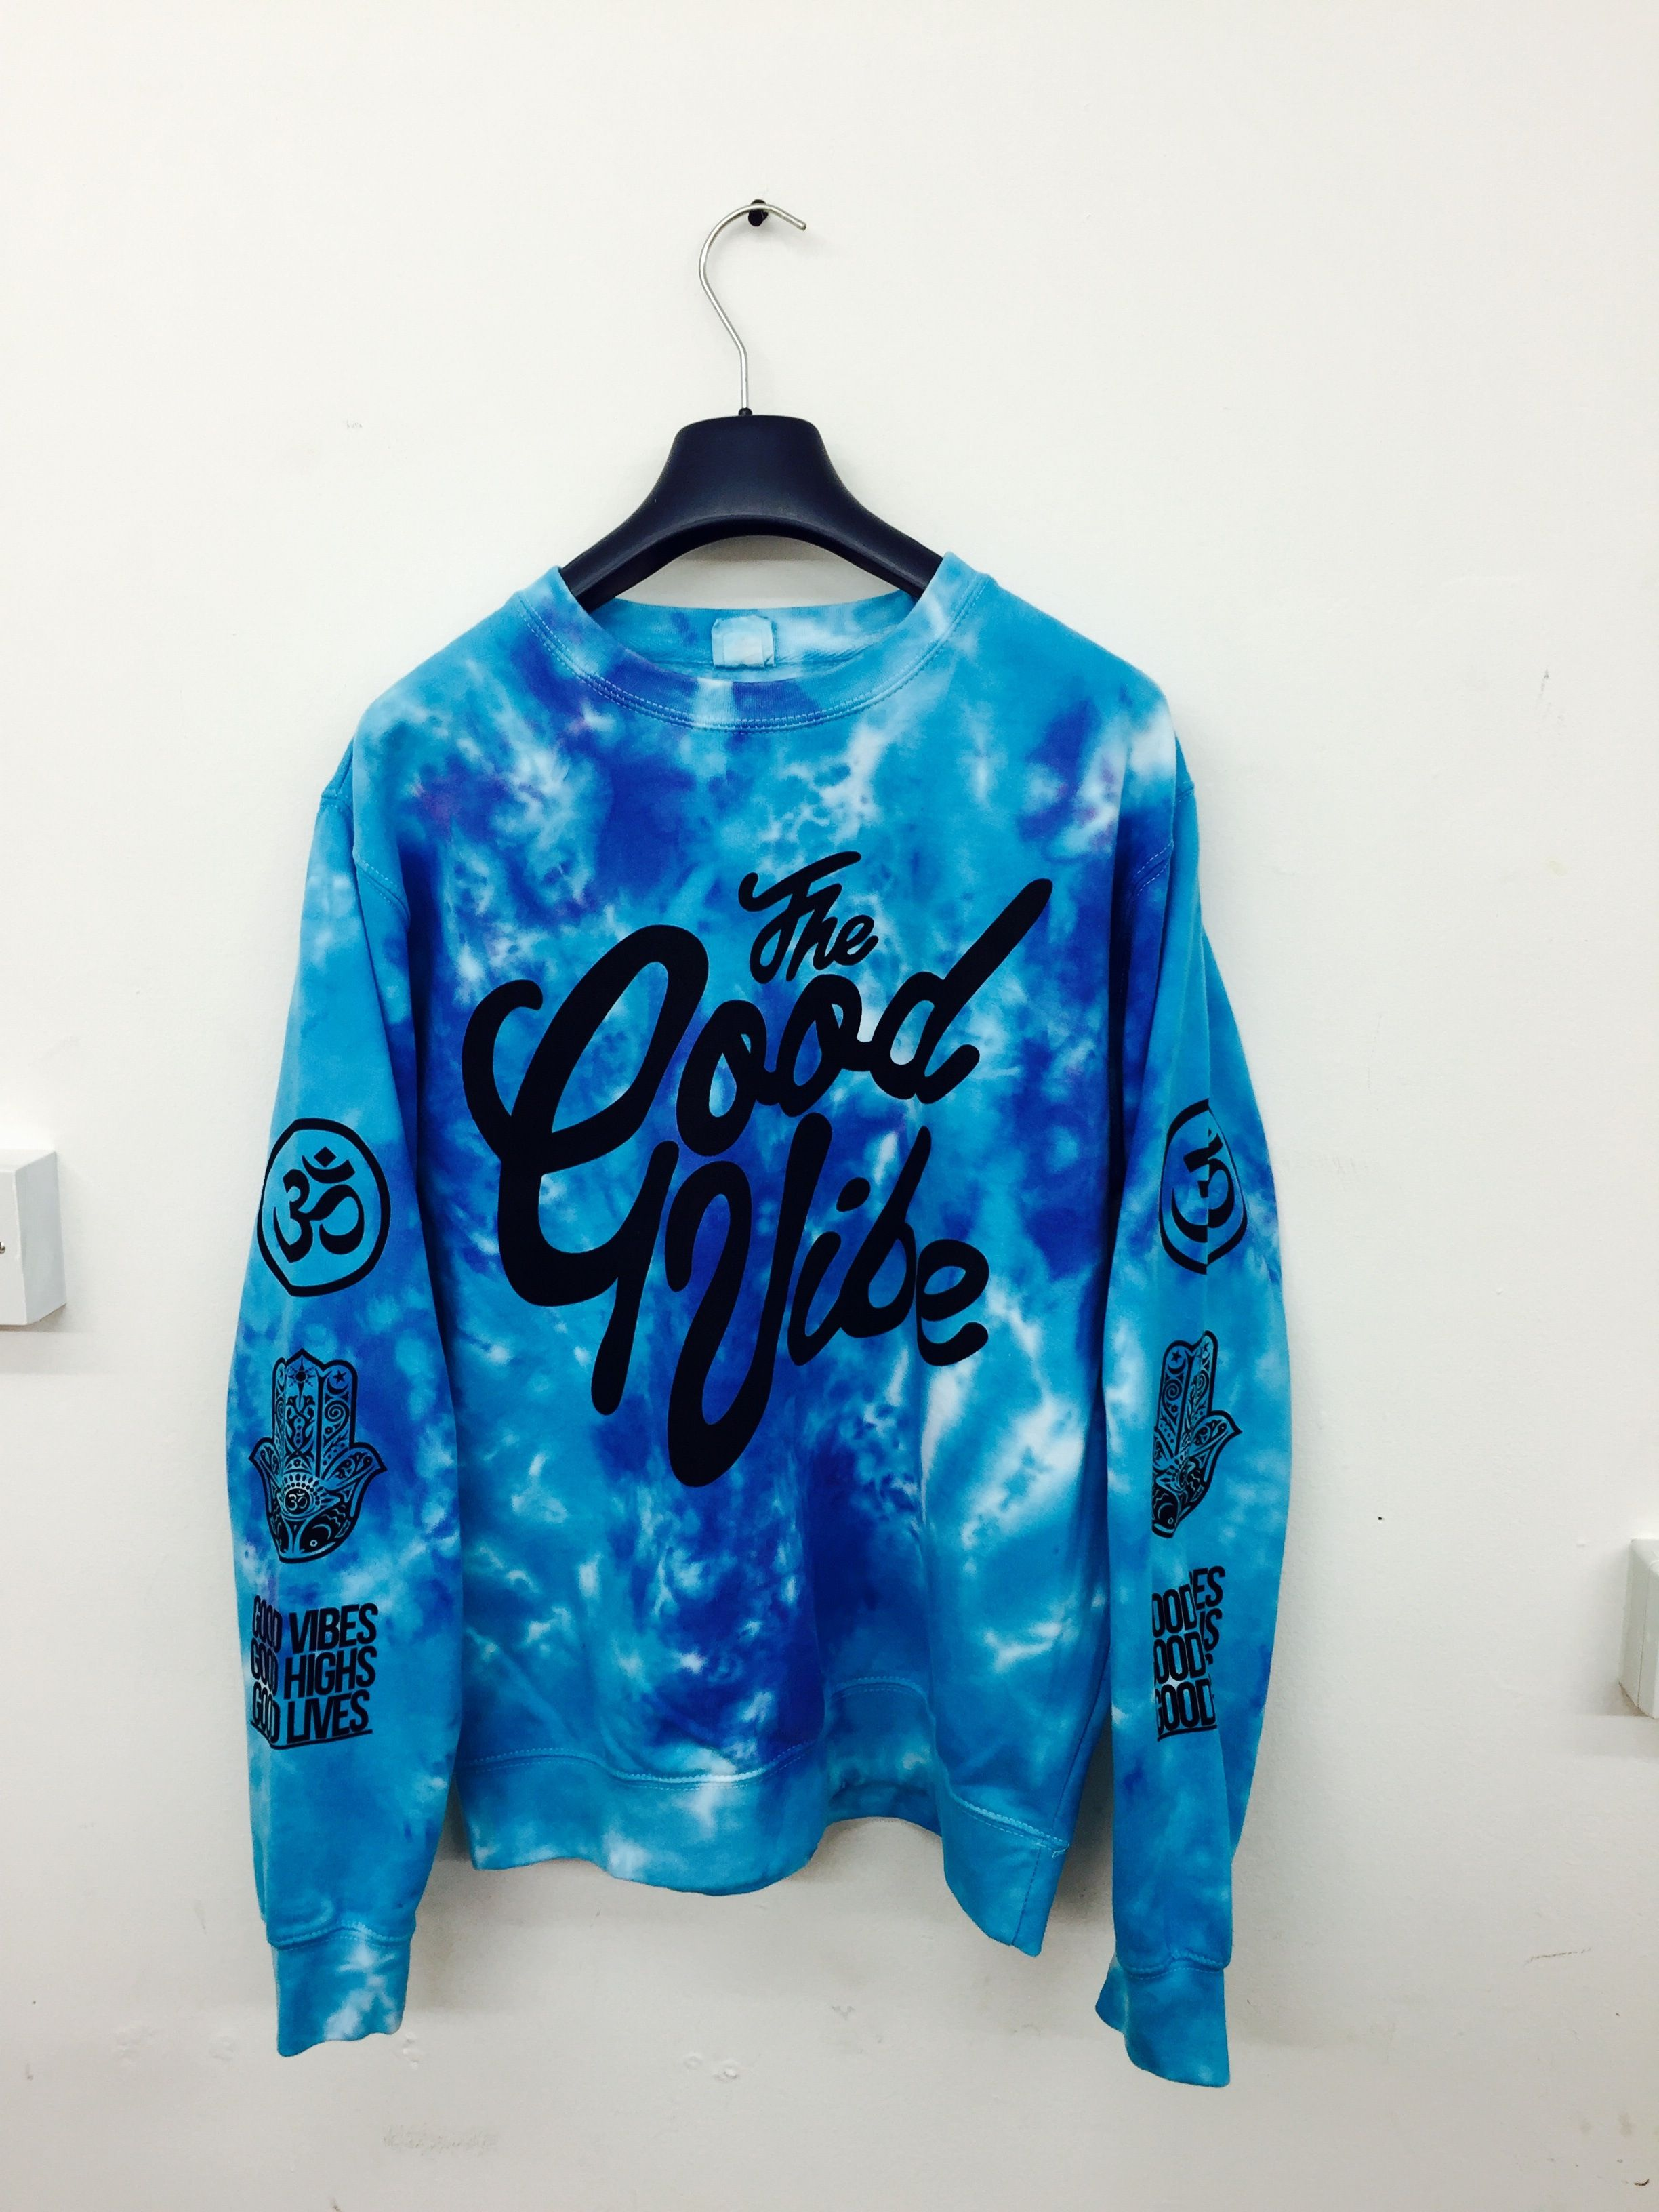 Good Vibes Tie Dye Jumper Clothes Fashion Fashion Outfits [ 3264 x 2448 Pixel ]